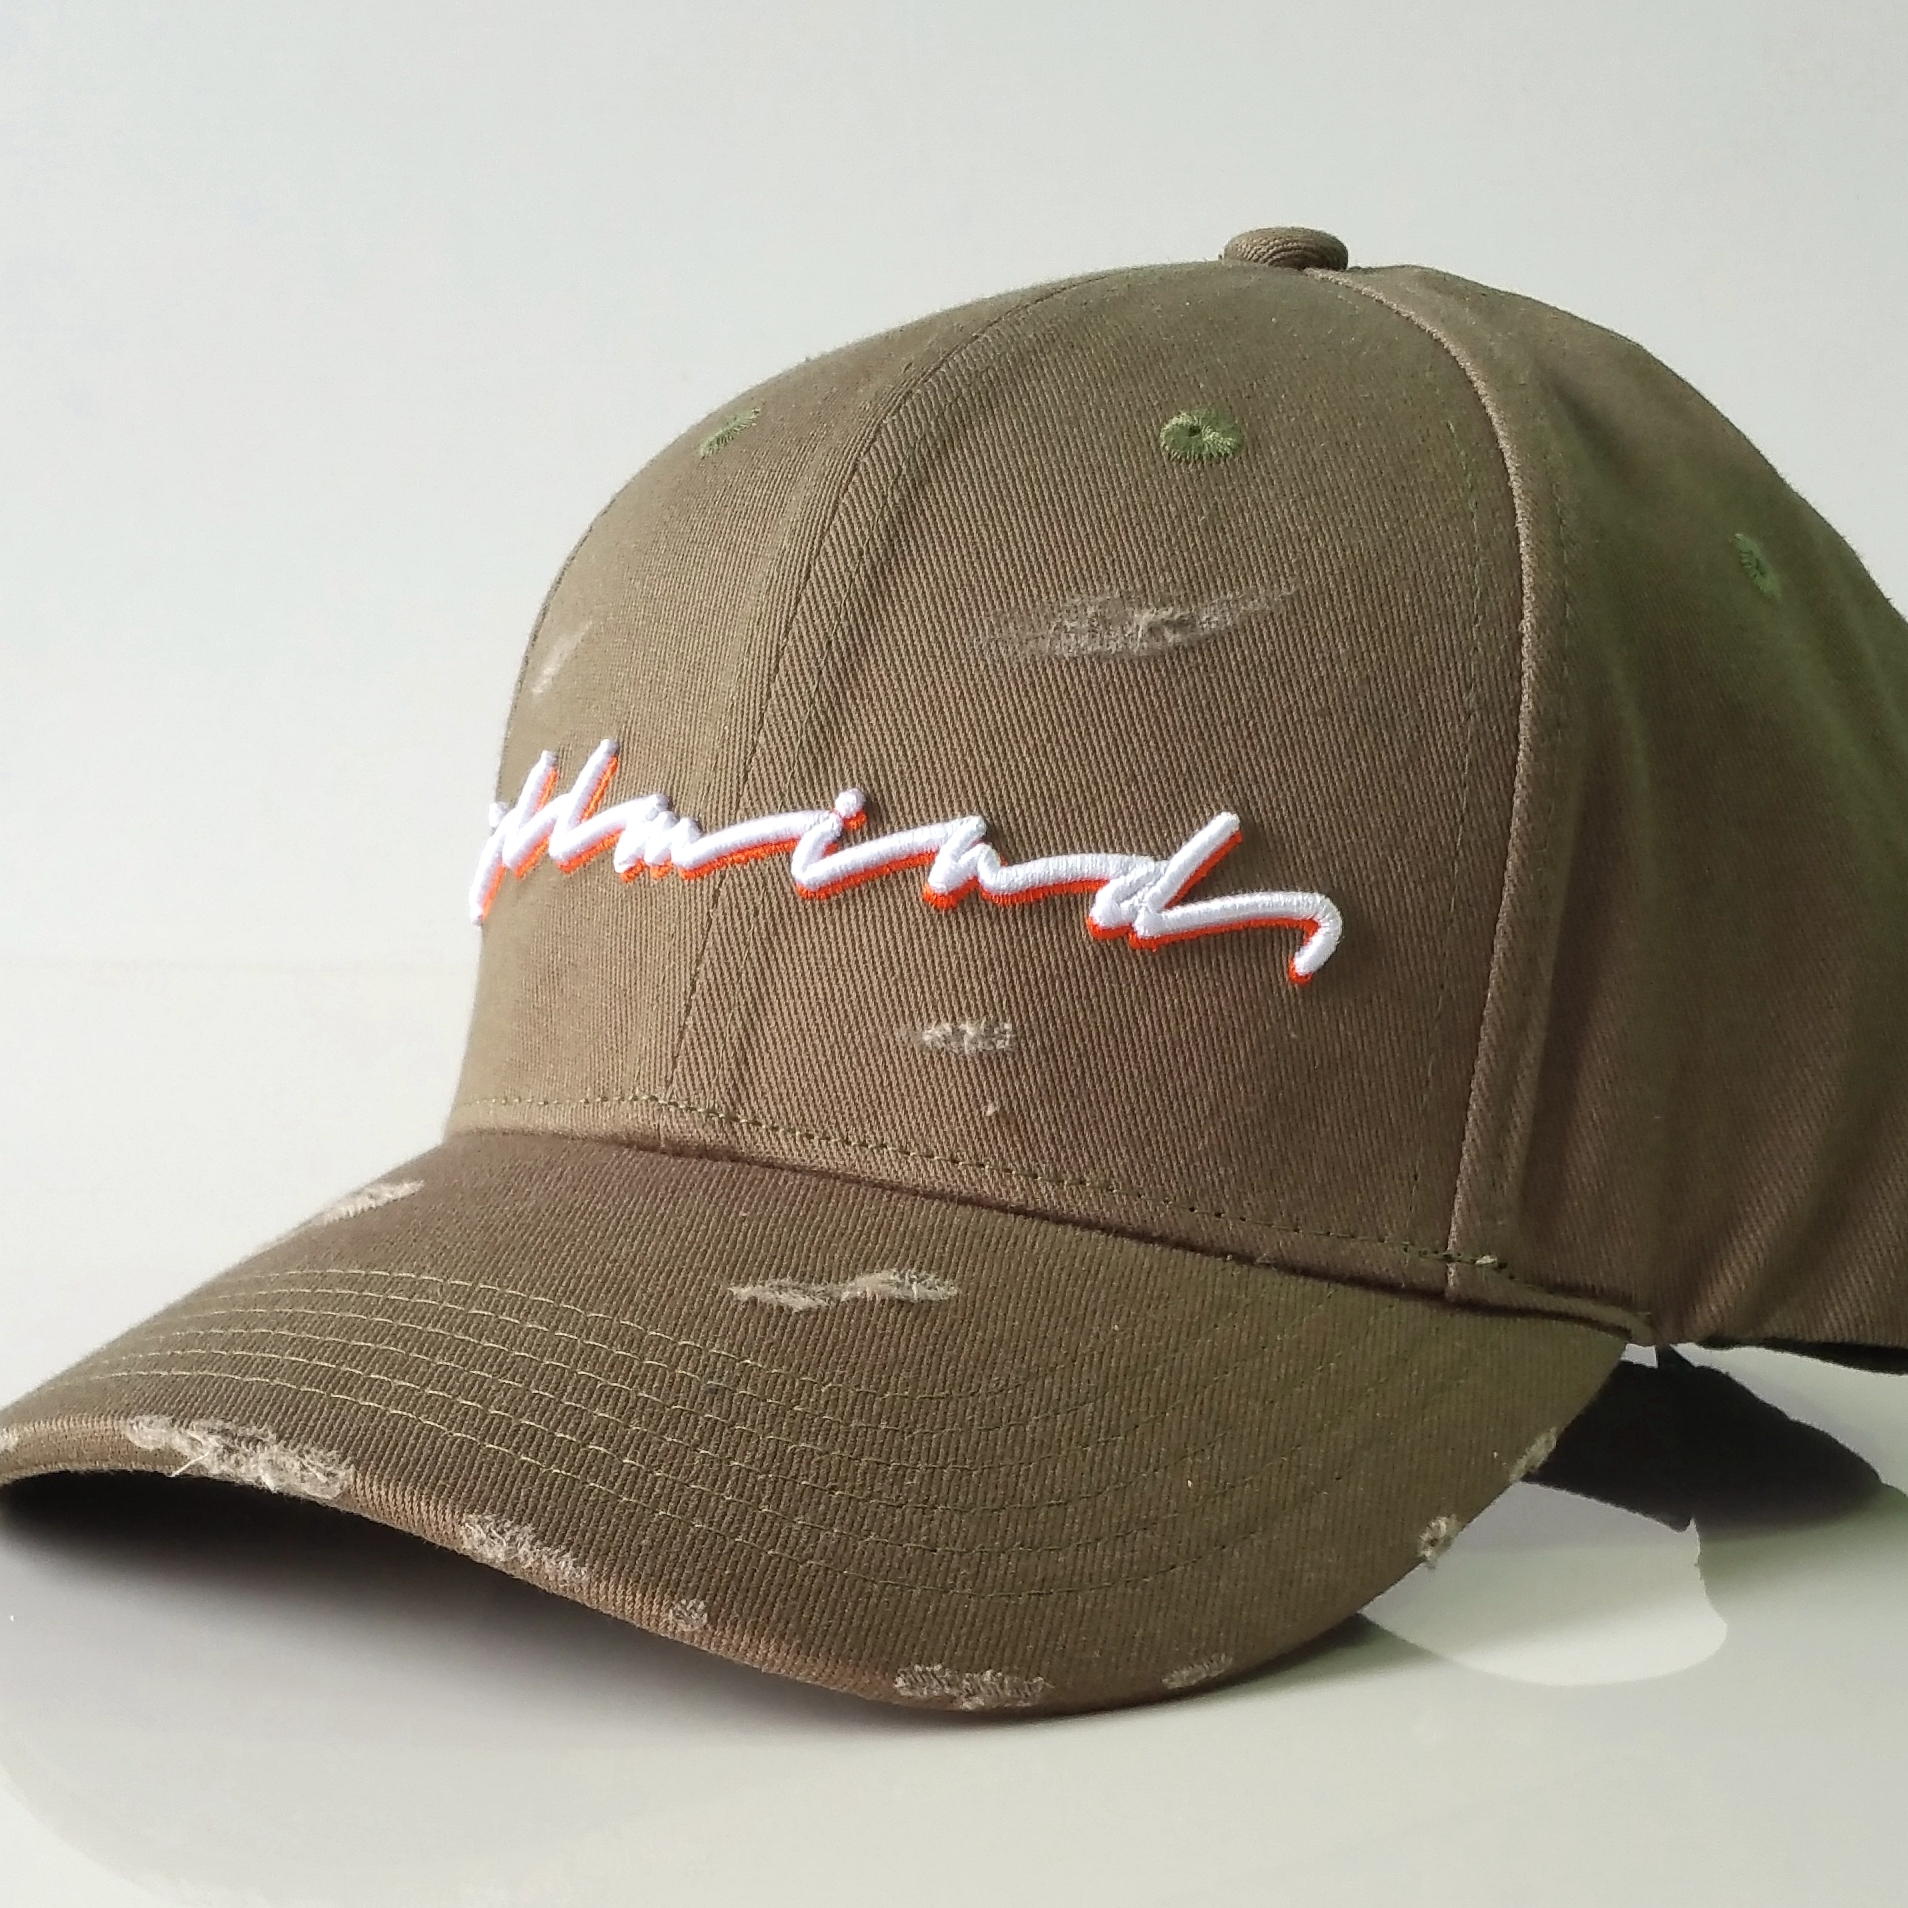 Capmy headwear of China baseball cap hat manufacturer